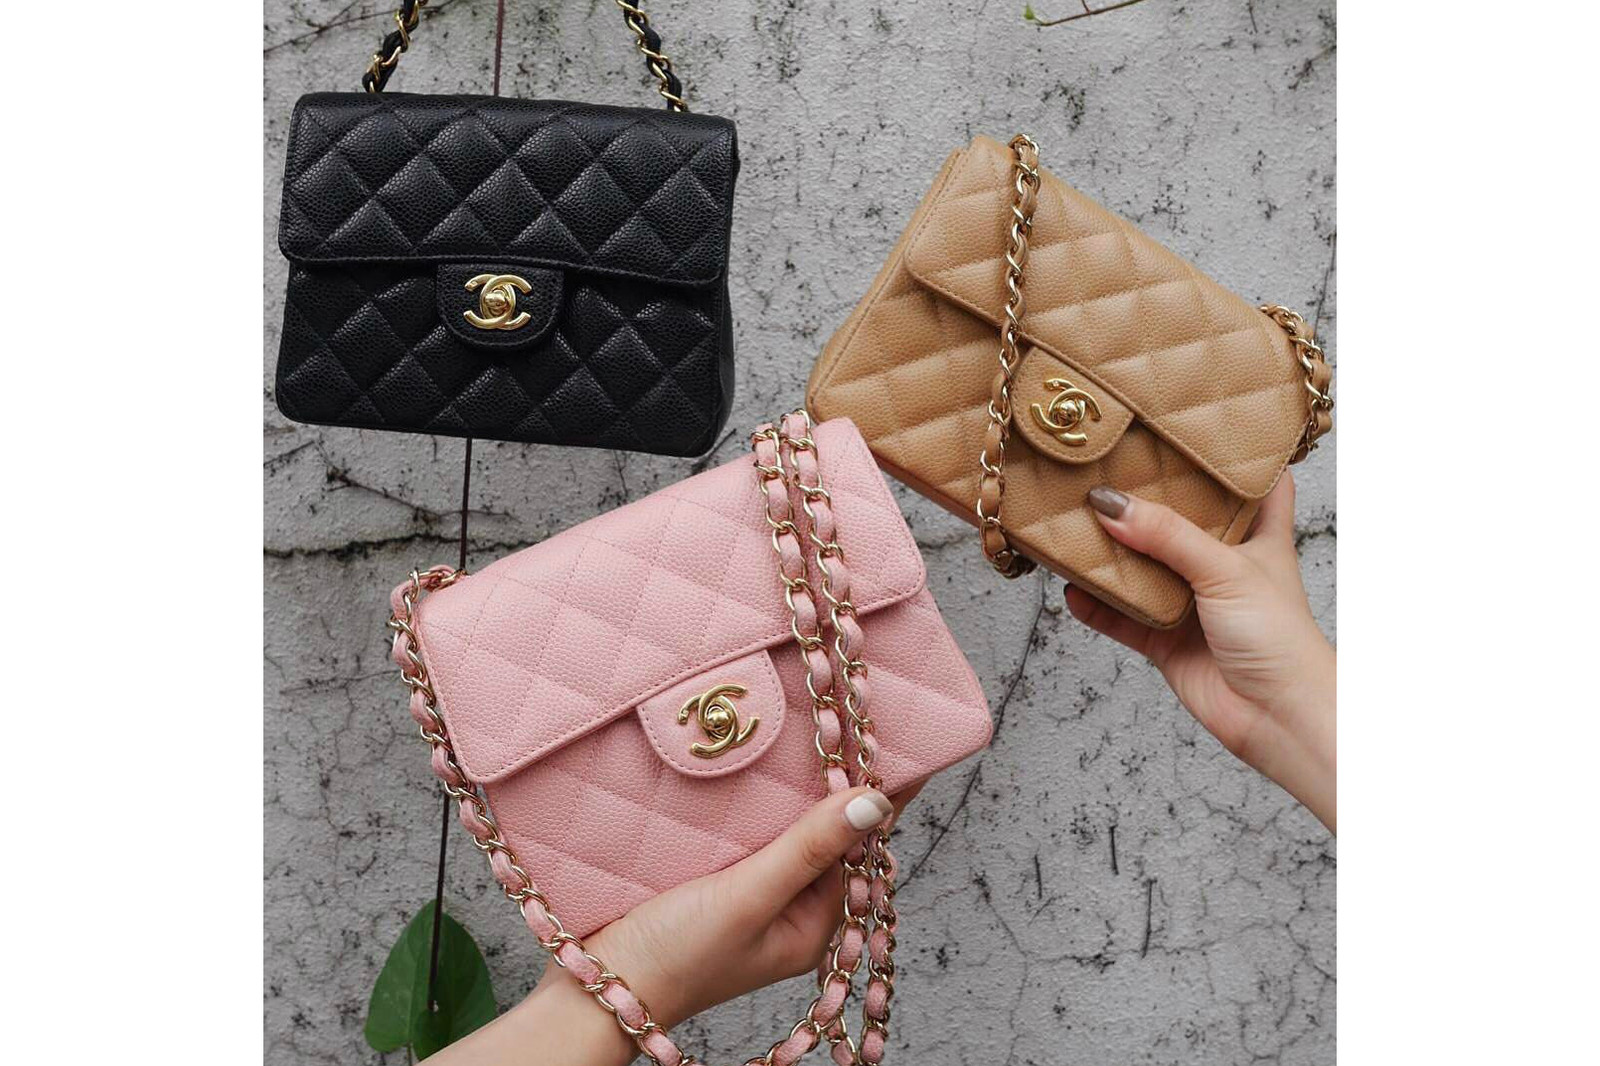 a2e851522a Vintage Designer Handbags Bags Where to Buy Online Chanel Gucci Louis  Vuitton Dior Luxury Brand Vestiaire